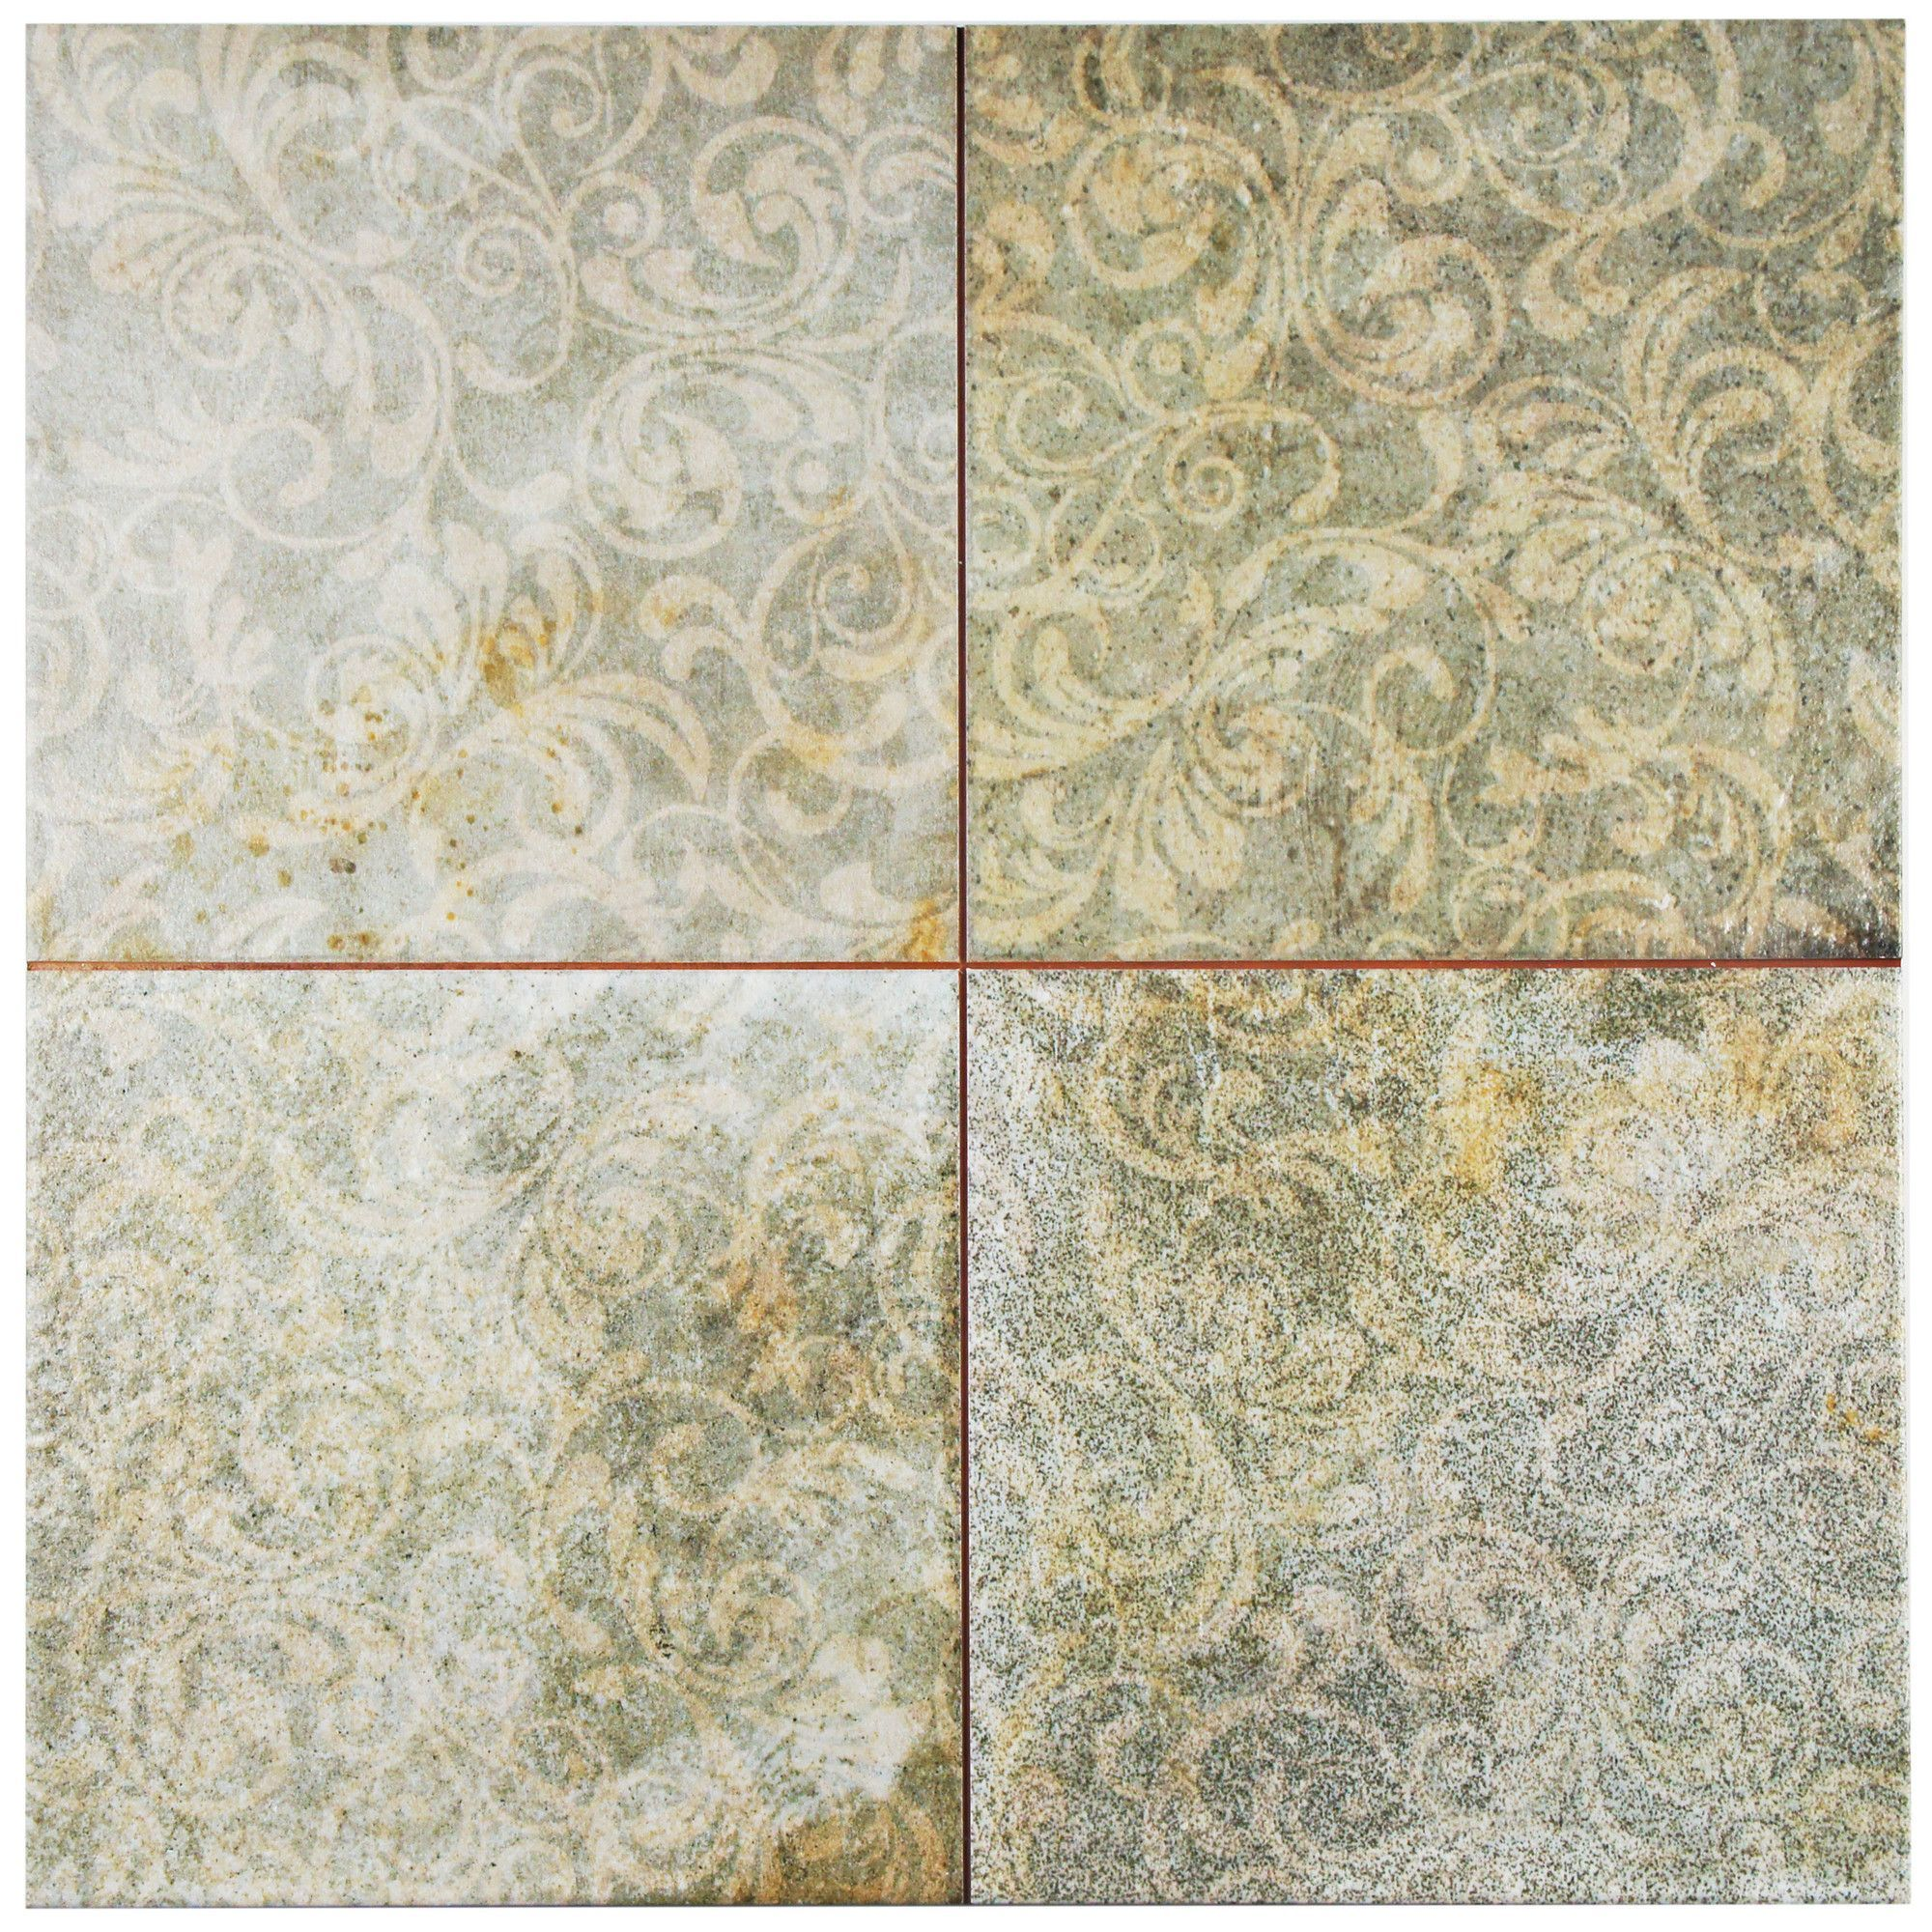 Royalty 1775 X 1775 Ceramic Field Tile In Beigebluepatina